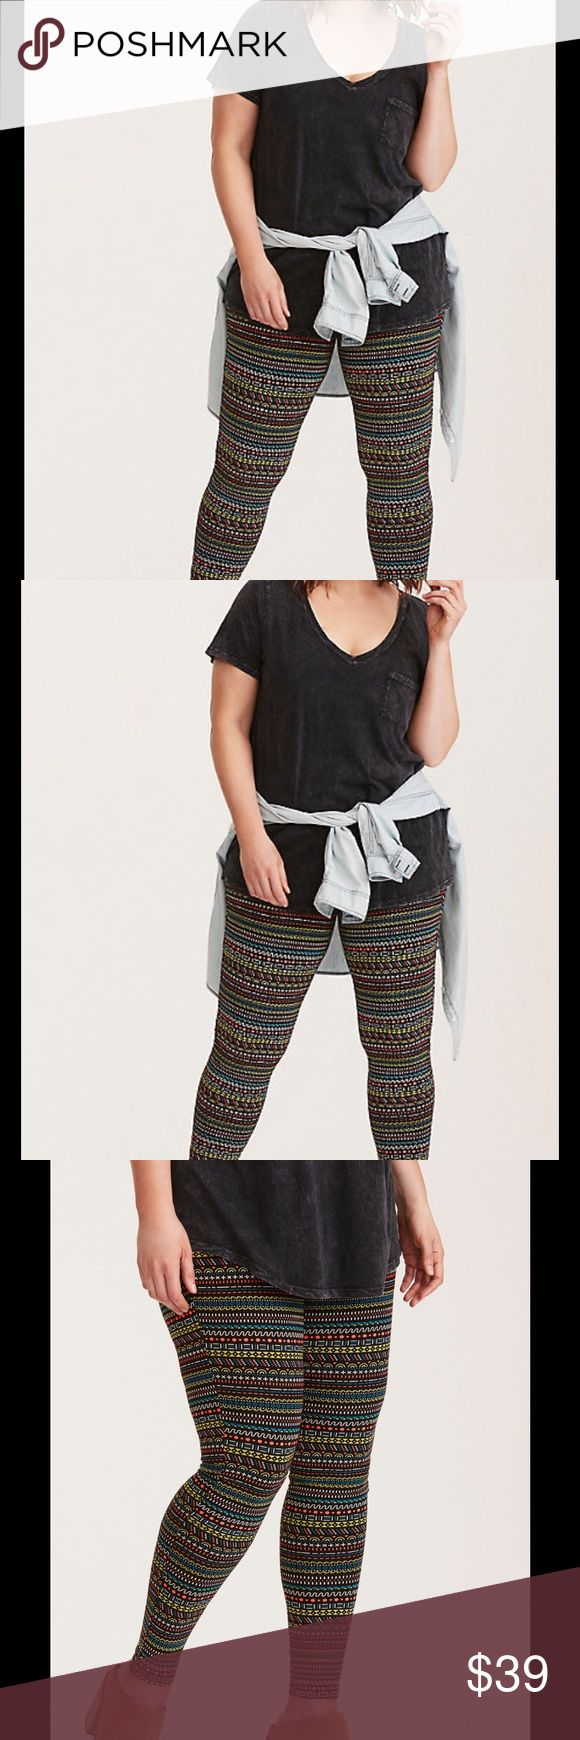 Torrid Size 4 Cropped Leggings geo print We're in love with the shape of these shapely leggings. The black knit offers second skin fit and a stretch waistband keeps you comfy. The geo multi color print has us brushing up on our geometry. torrid Pants Leggings